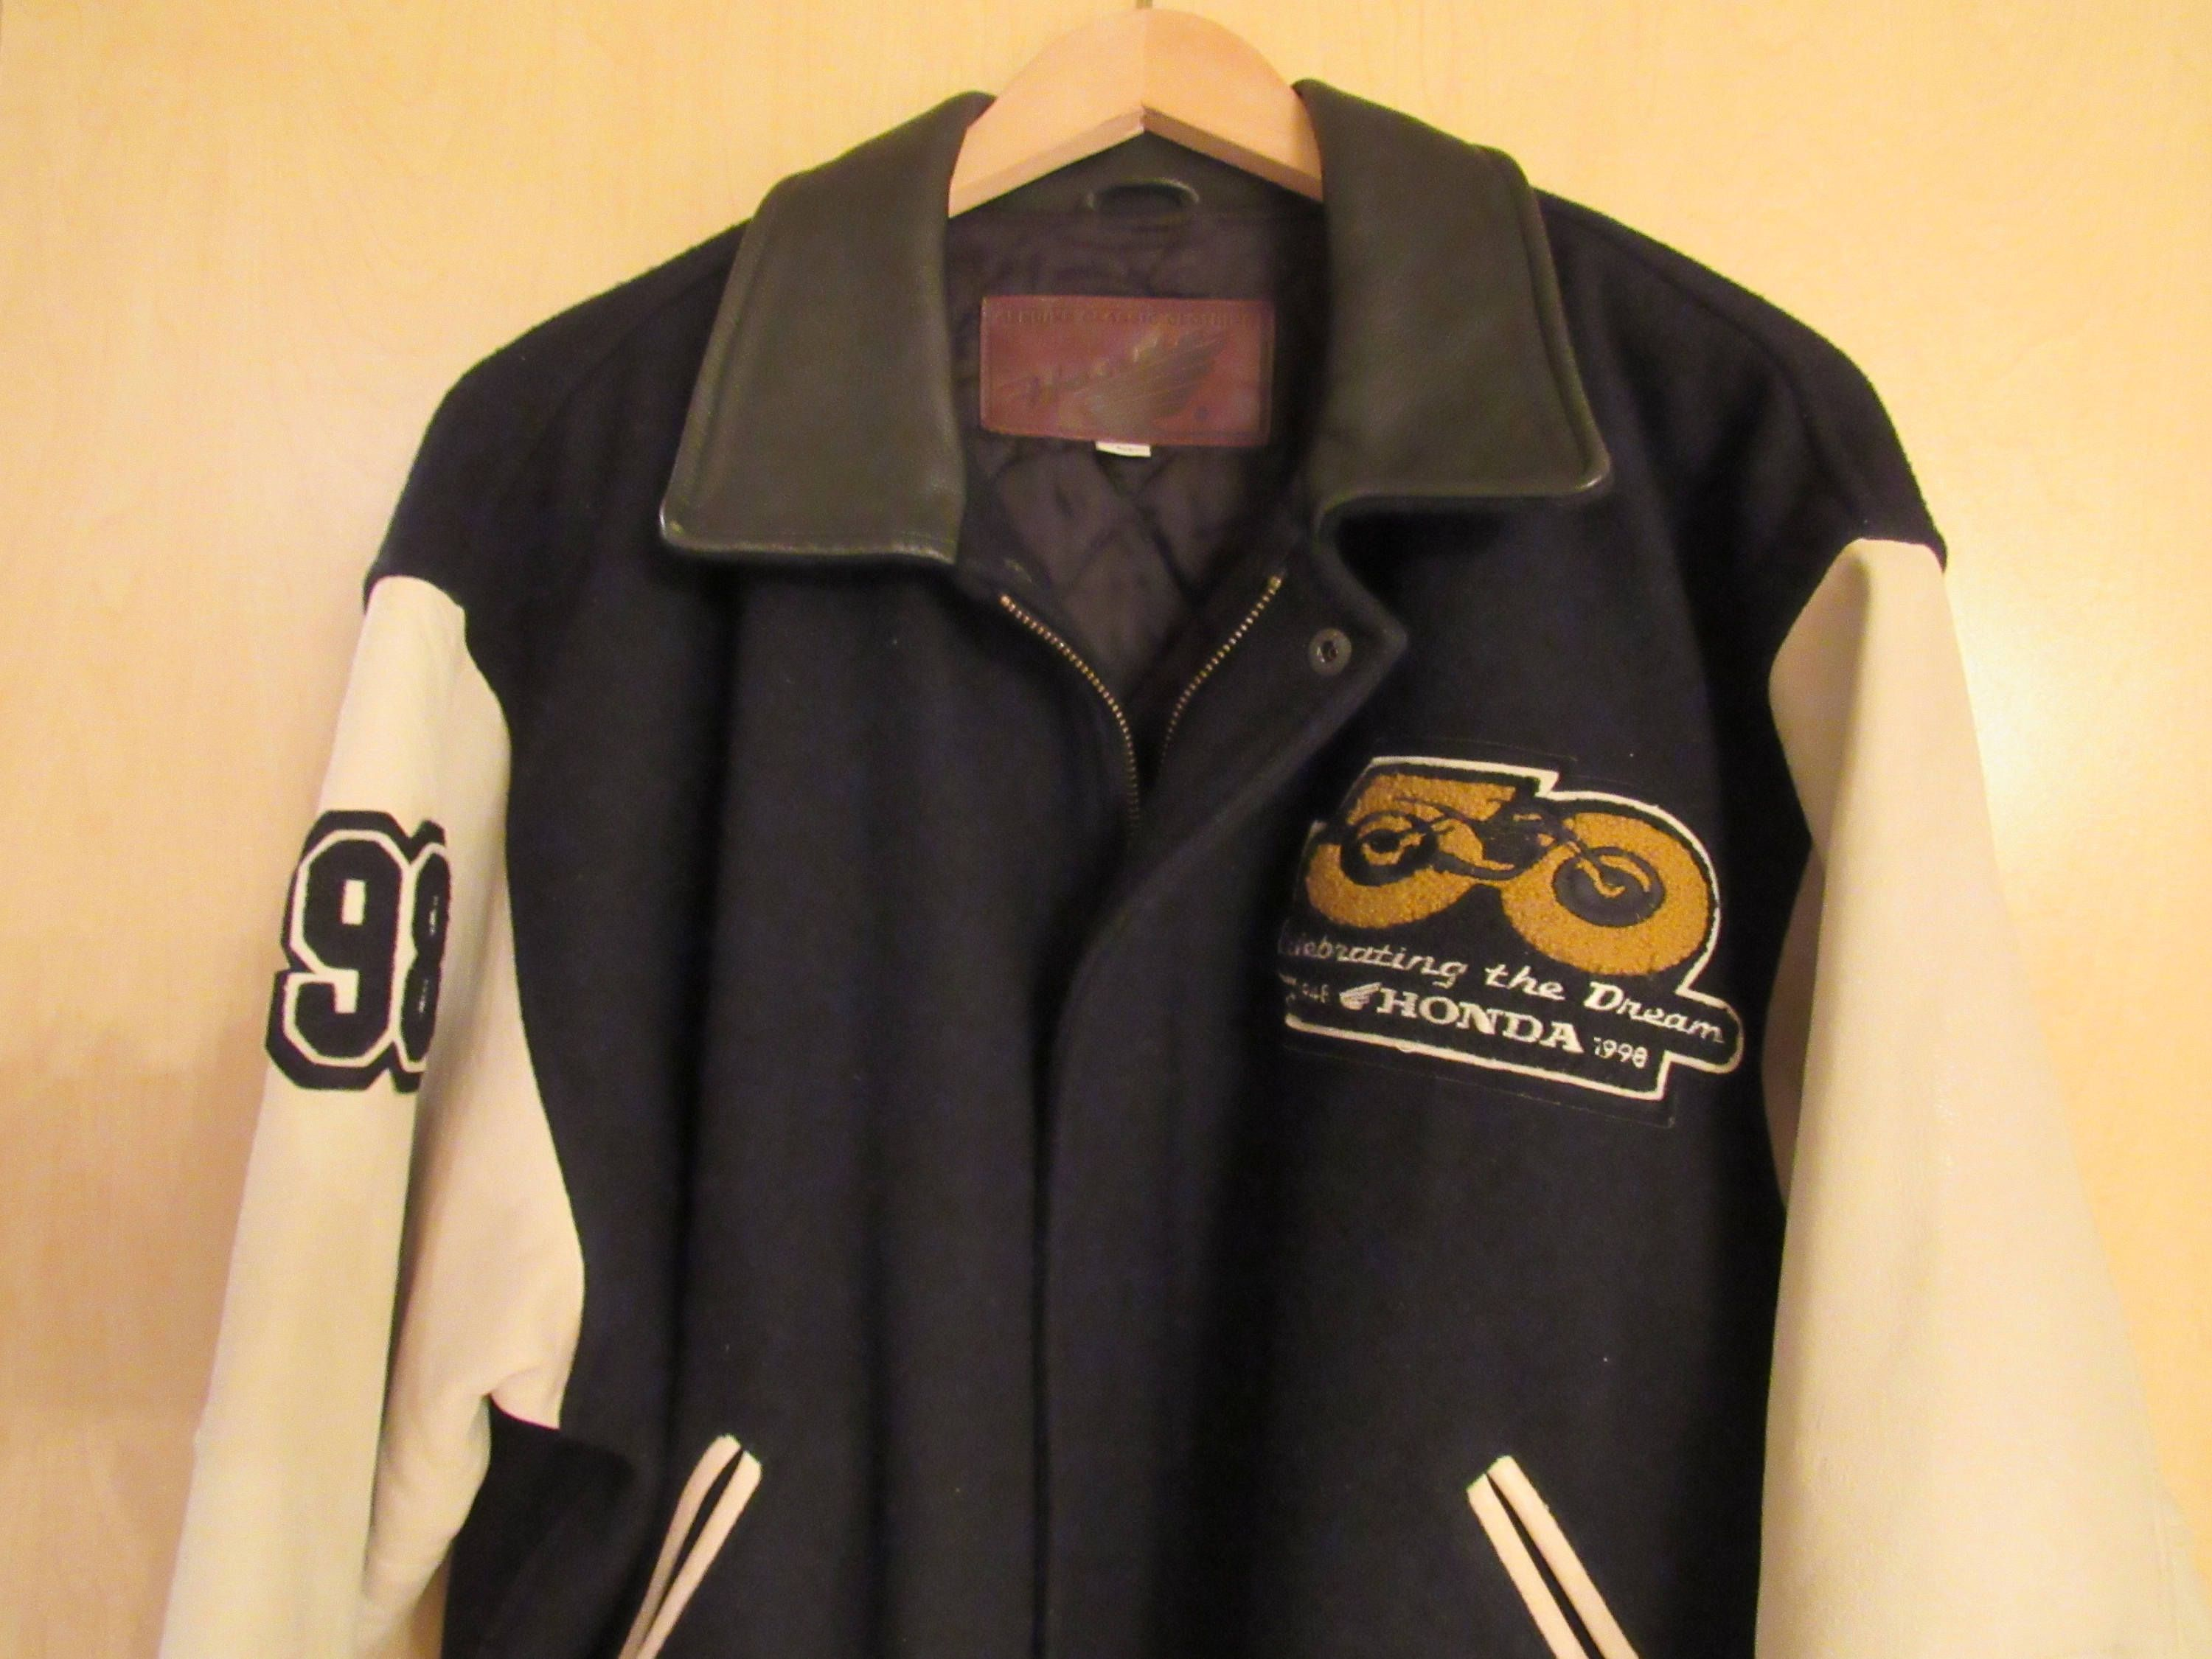 Honda Motorcycle 50th Anniversary Lettermans Jacket Size Medium Collectible American Corp By Thevintagenightowls On